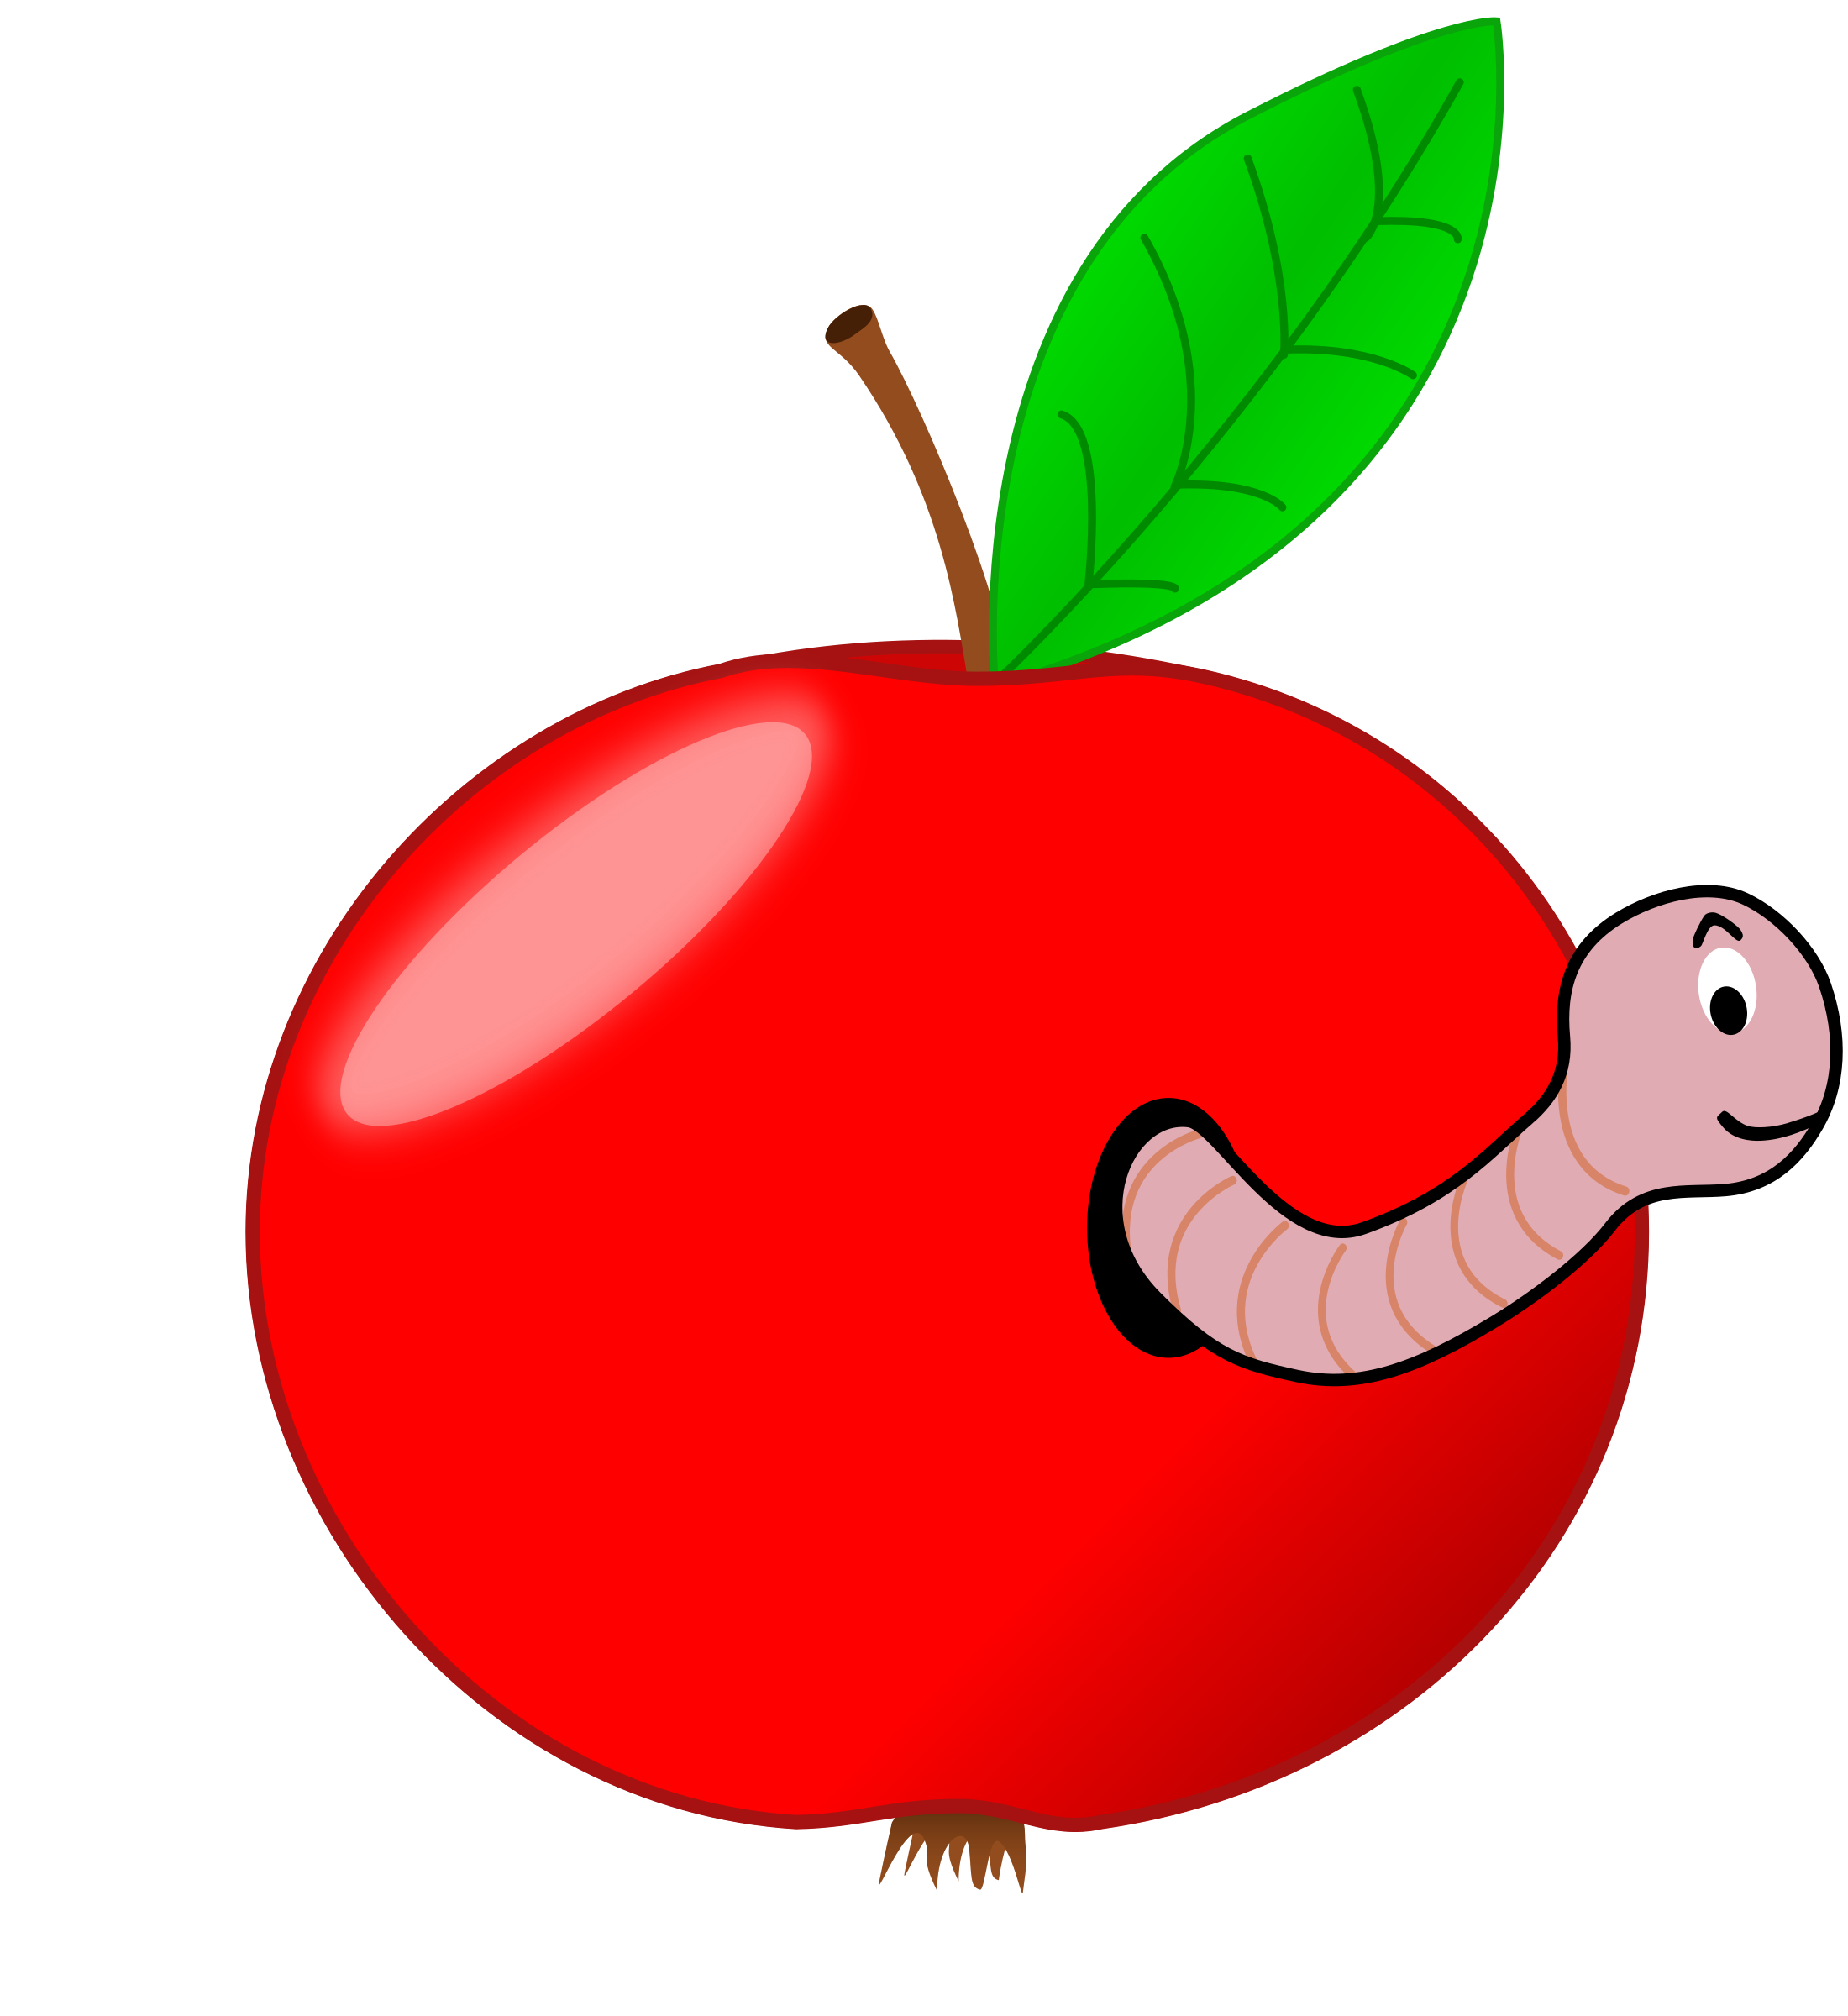 Worm clipart book reading caterpillar. Red apple with a